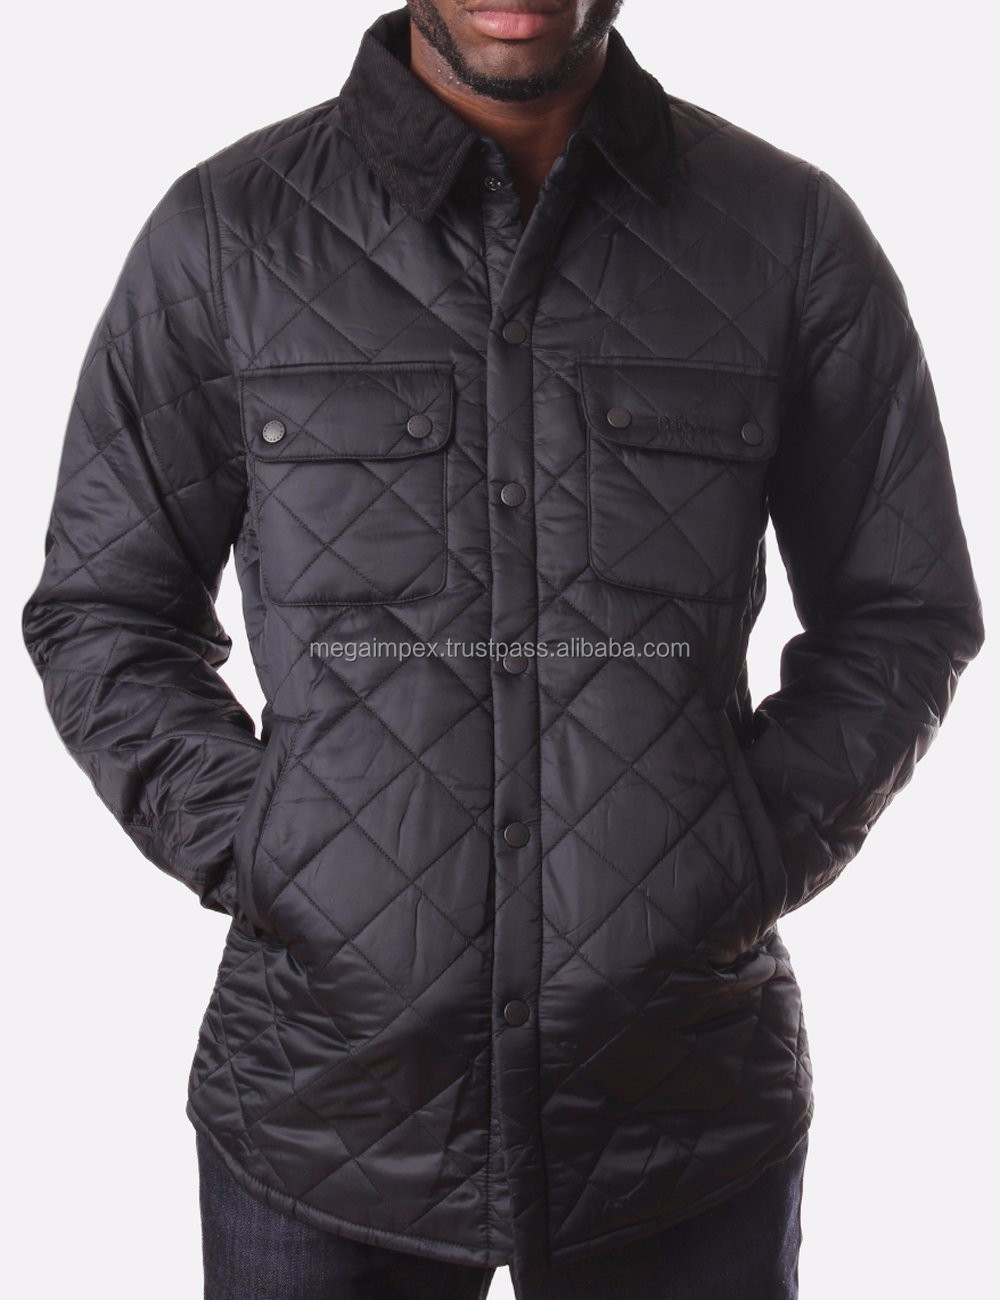 Brown Diamond Quilt Leather Bomber Jacket Men - Buy Fancy Jacket ...